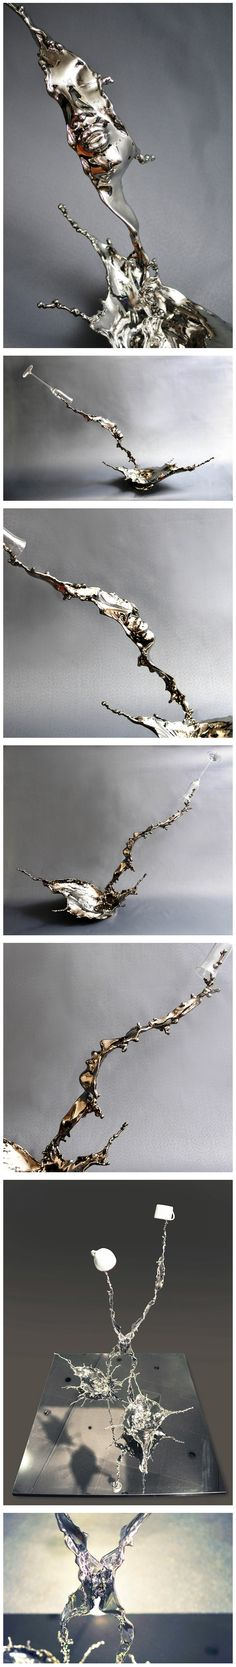 I first thought these were photos of mercury being thrown, and didn't even notice the faces as I was just admiring the shiny! :-s Stainless steel sculptures containing faces by Johnson Tsang.